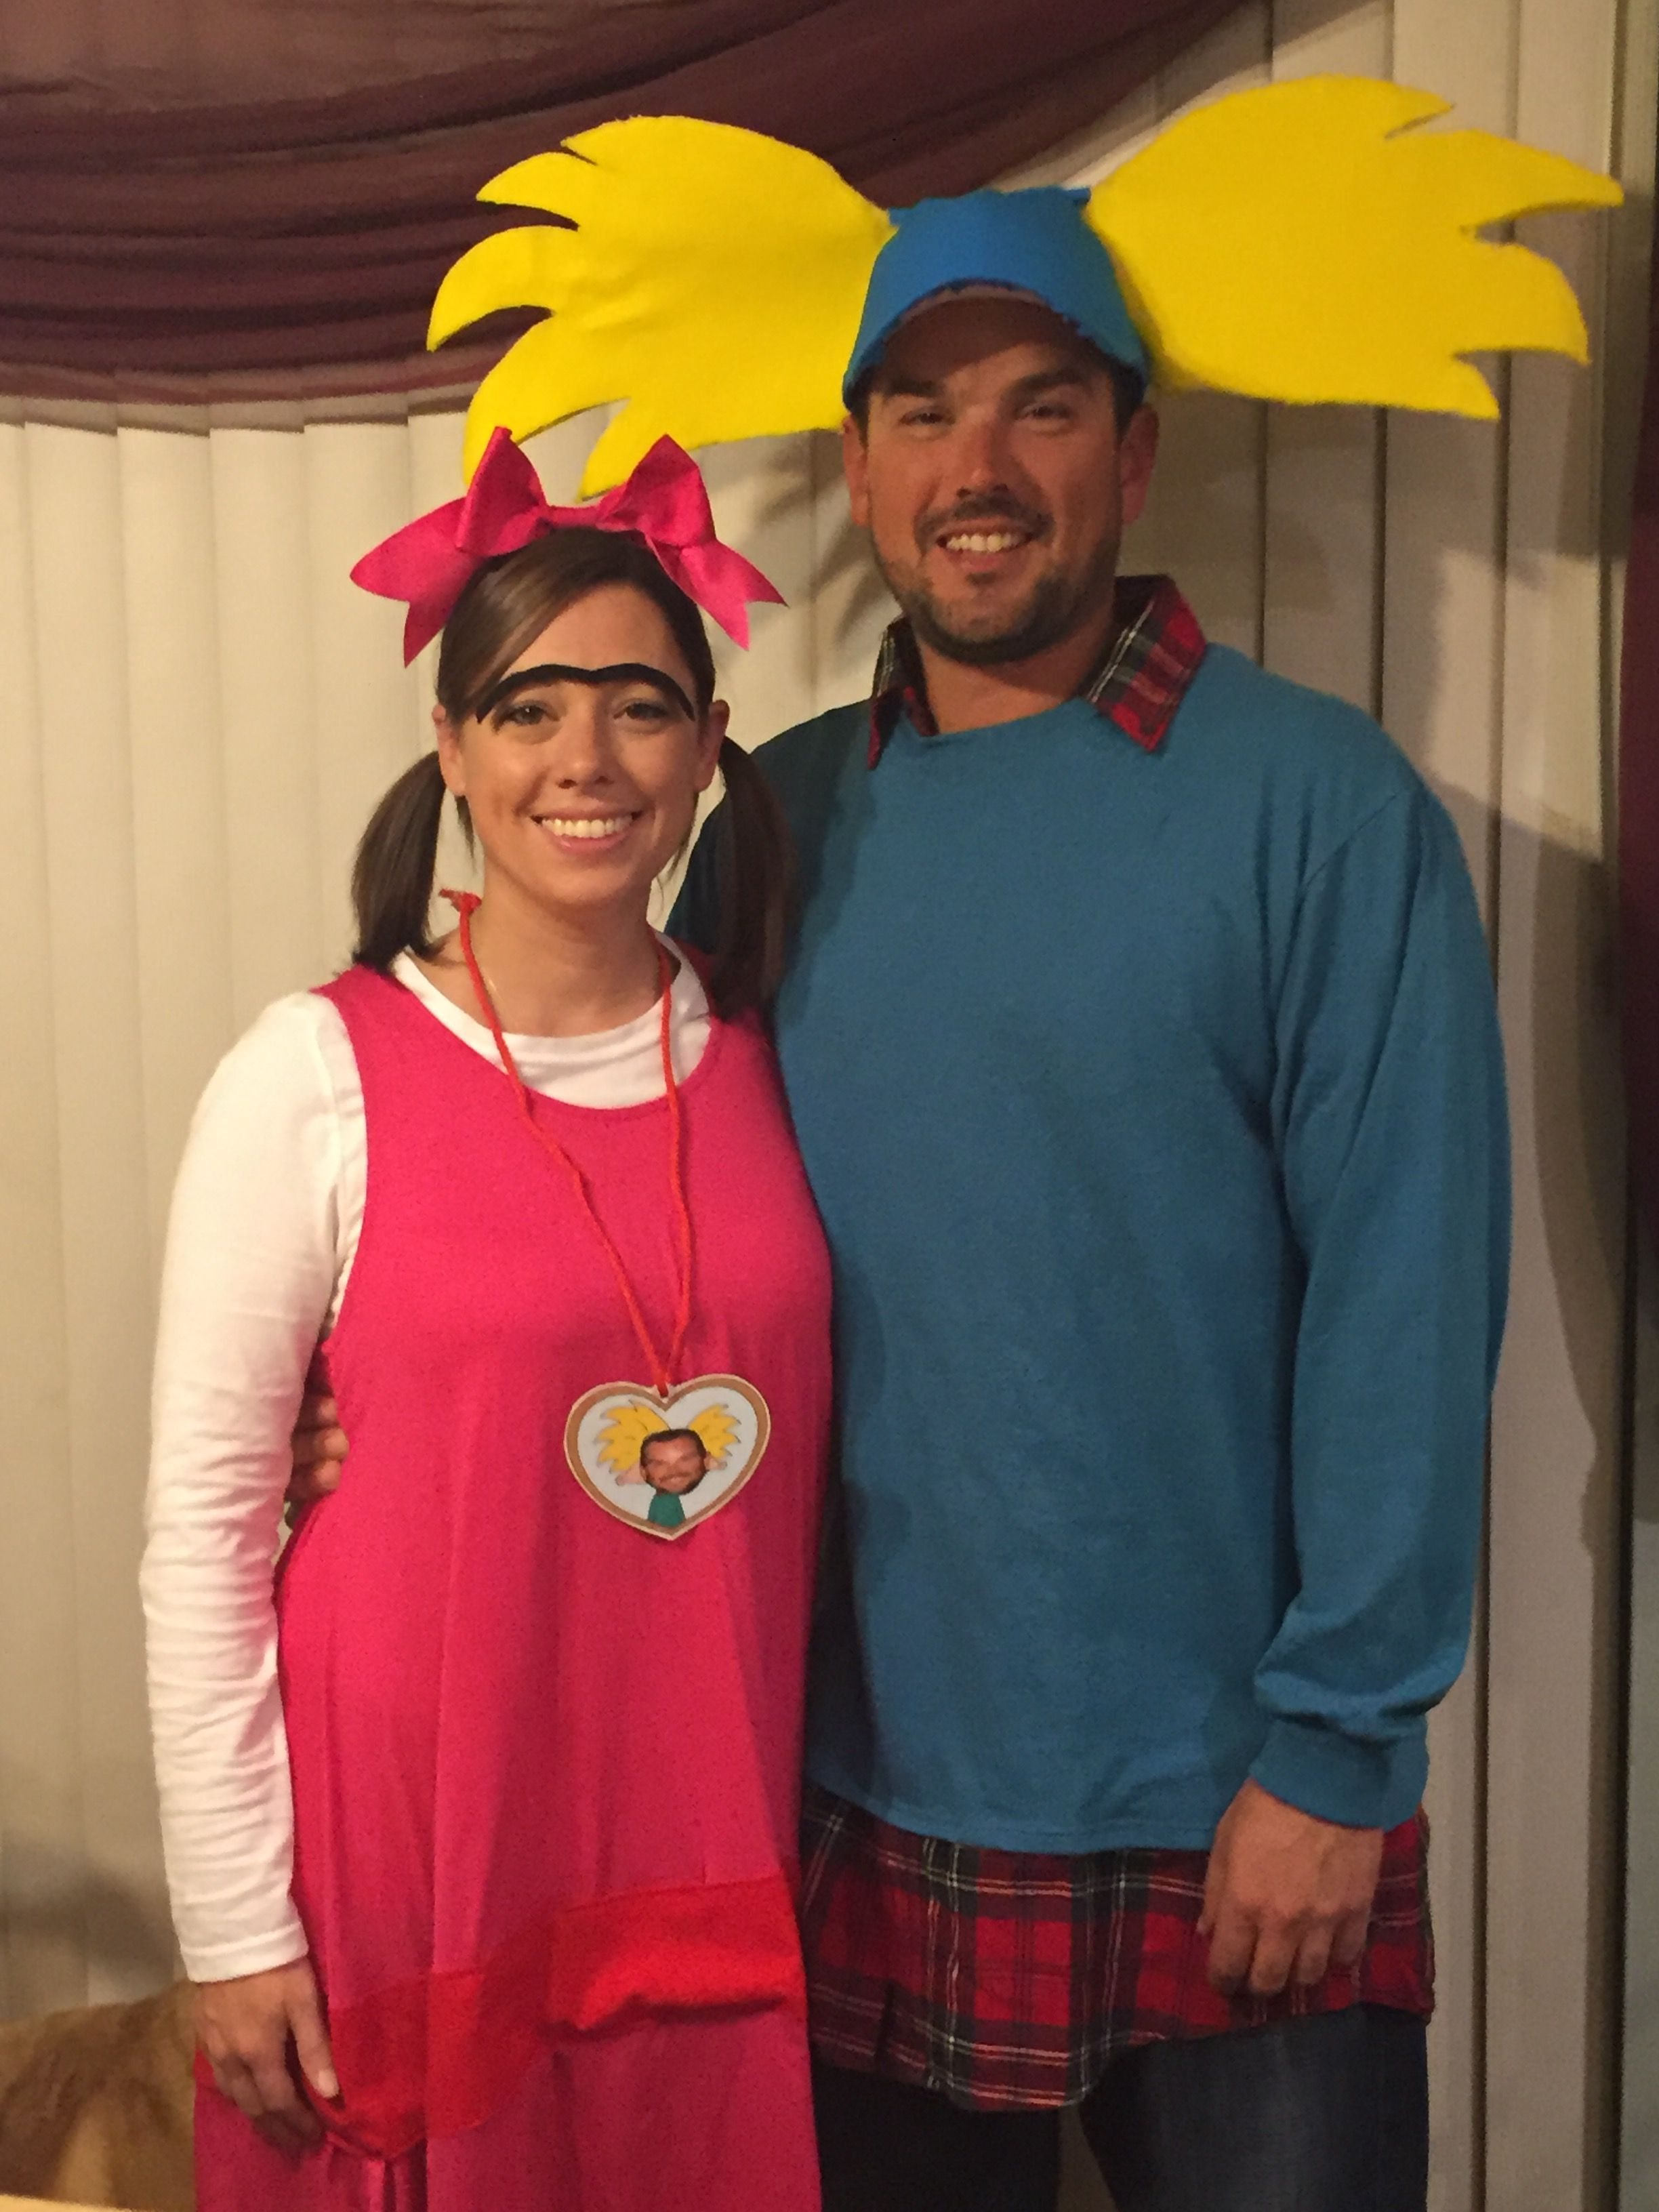 hey arnold halloween costumes couples diy nickelodeon 90s helga